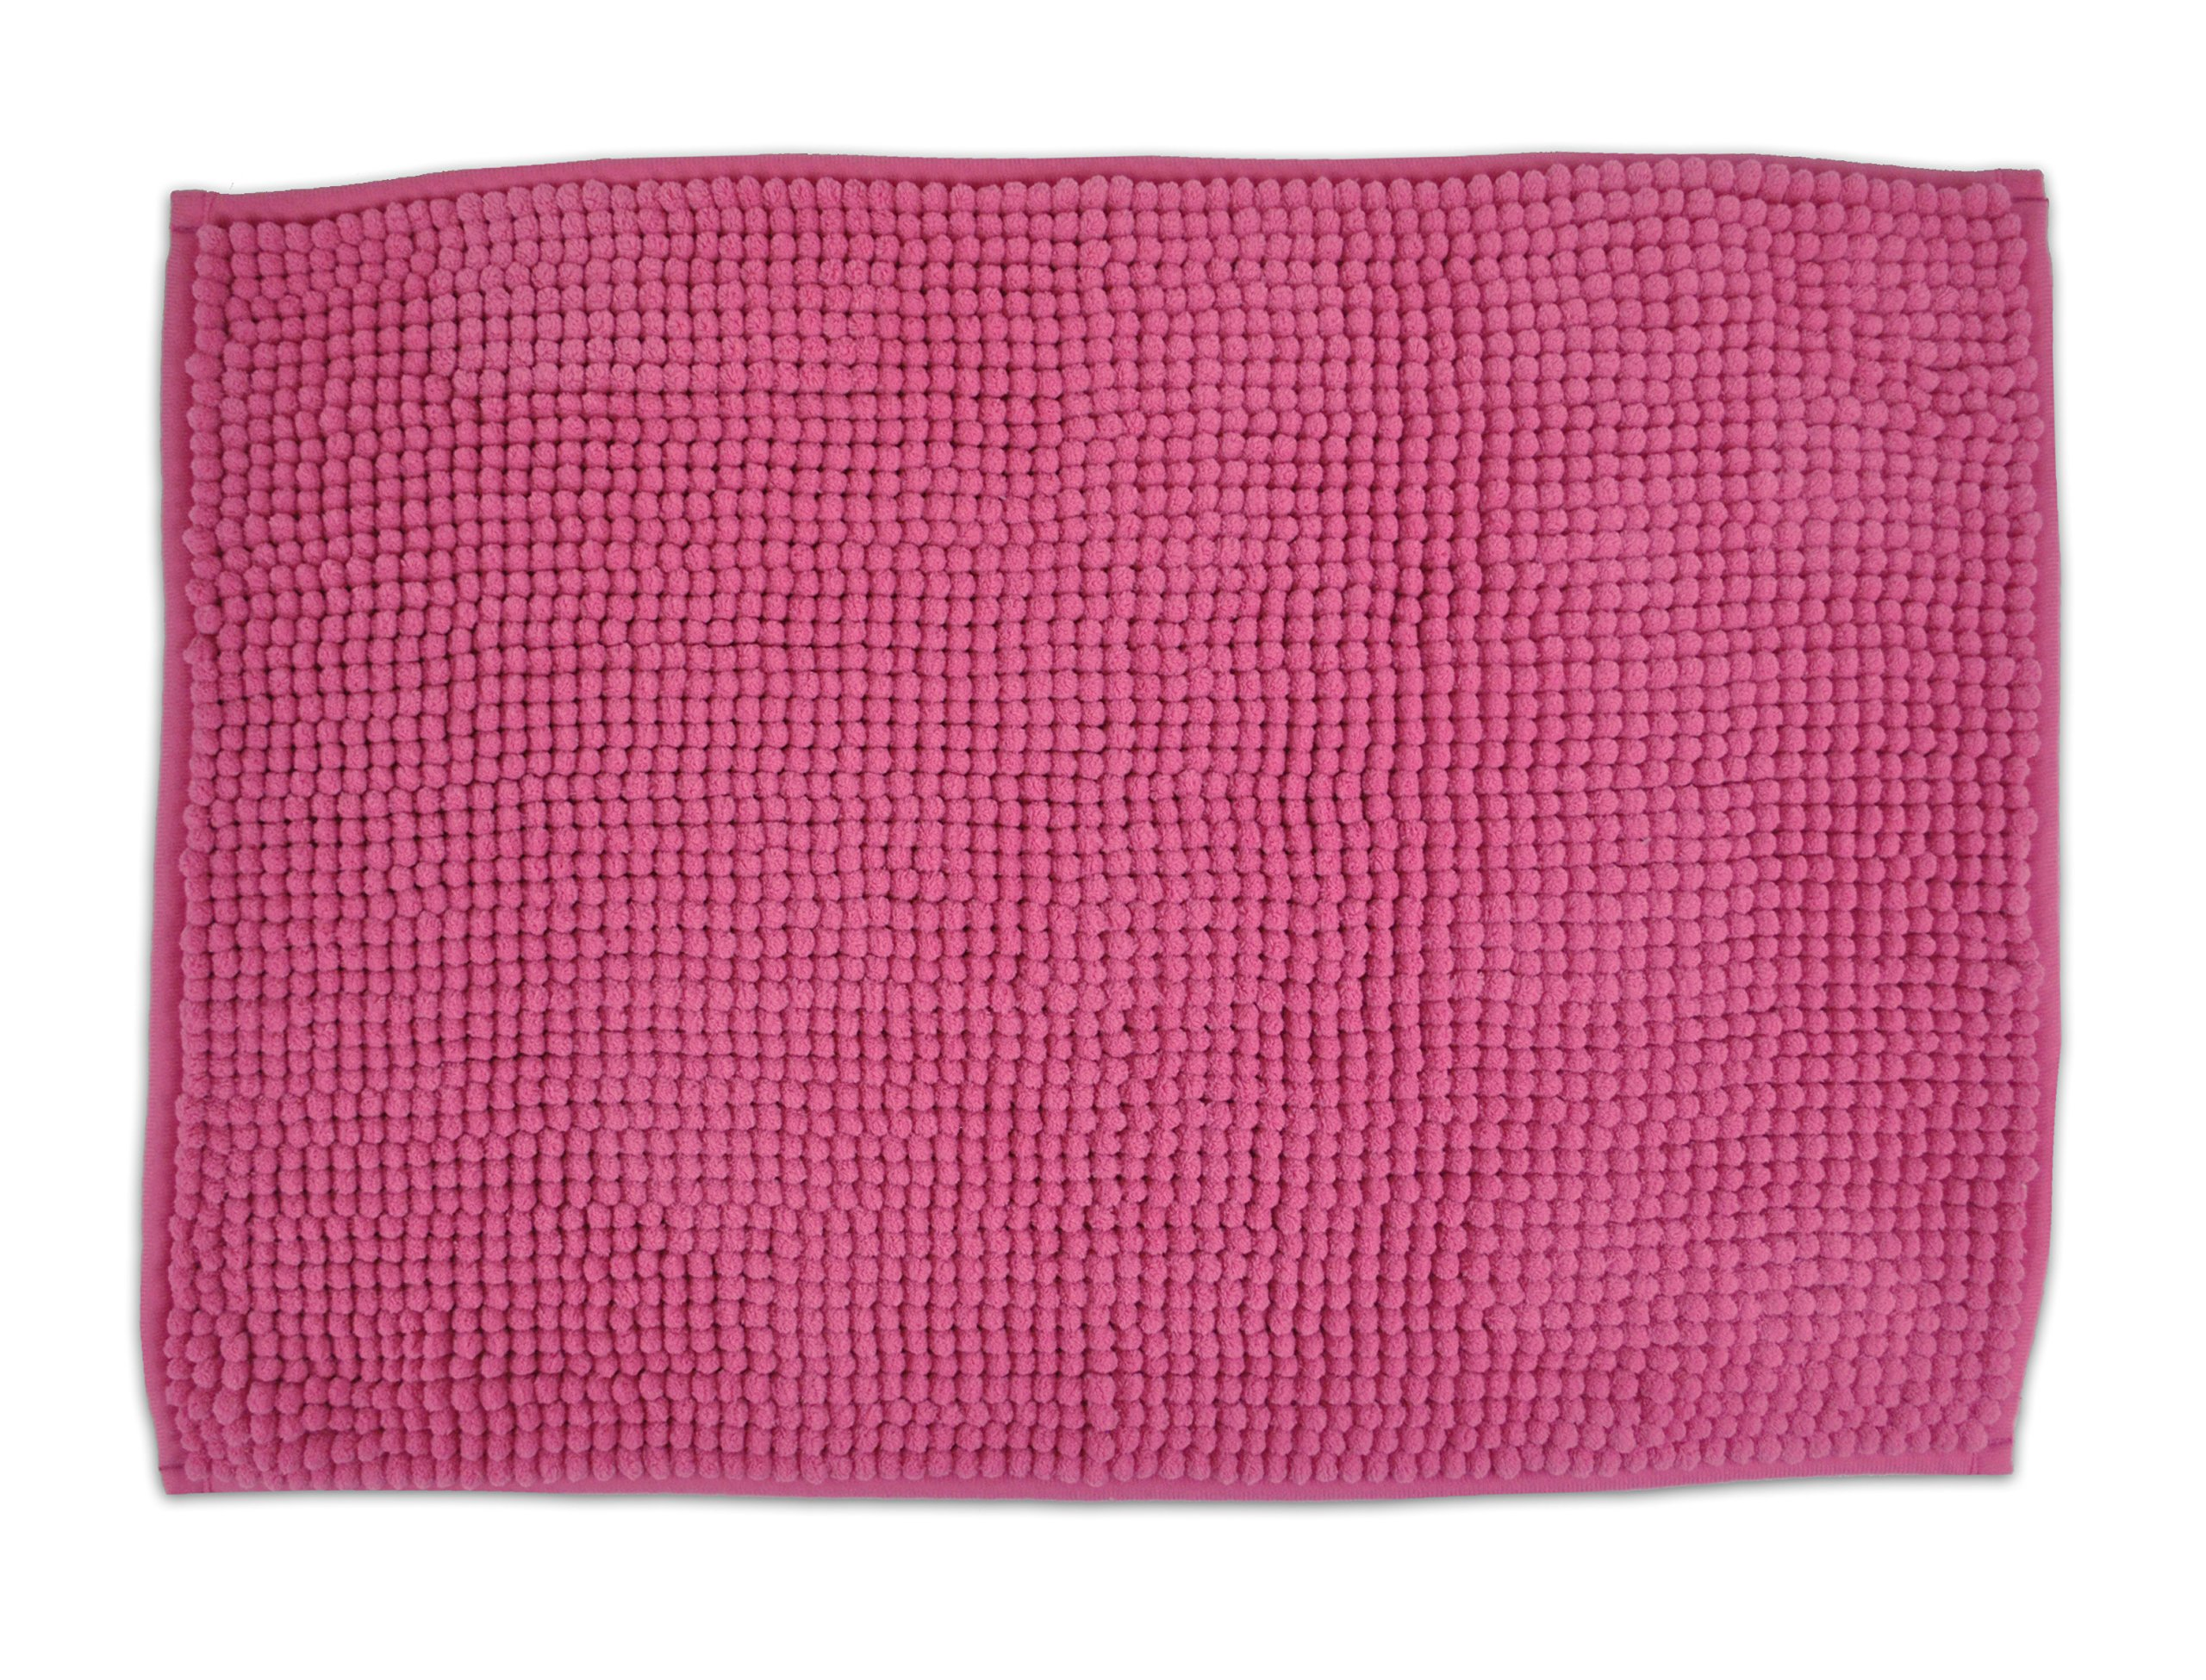 "DII Ultra Soft Plush Spa Pebble Chenille Bath Mat Place in Front of Shower, Vanity, Bath Tub, Sink, and Toilet, 17 x 24"" - Pink - Measures 17x24"". This non-slip bath rug is machine washable Fun, bright or earth tone bath mats to match or coordinate with existing or other new bathroom decor Soft to touch bath rugs, comfortable padding, constructed to absorb water quickly and dries fast - bathroom-linens, bathroom, bath-mats - 9142iLVgY L -"